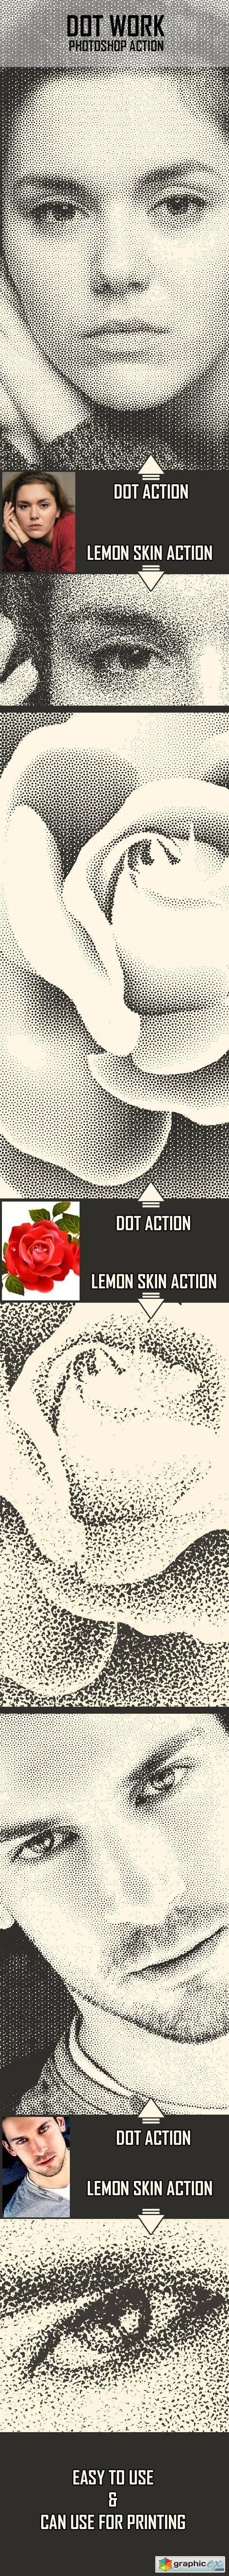 Dot Work Photoshop Action » Free Download Vector Stock Image